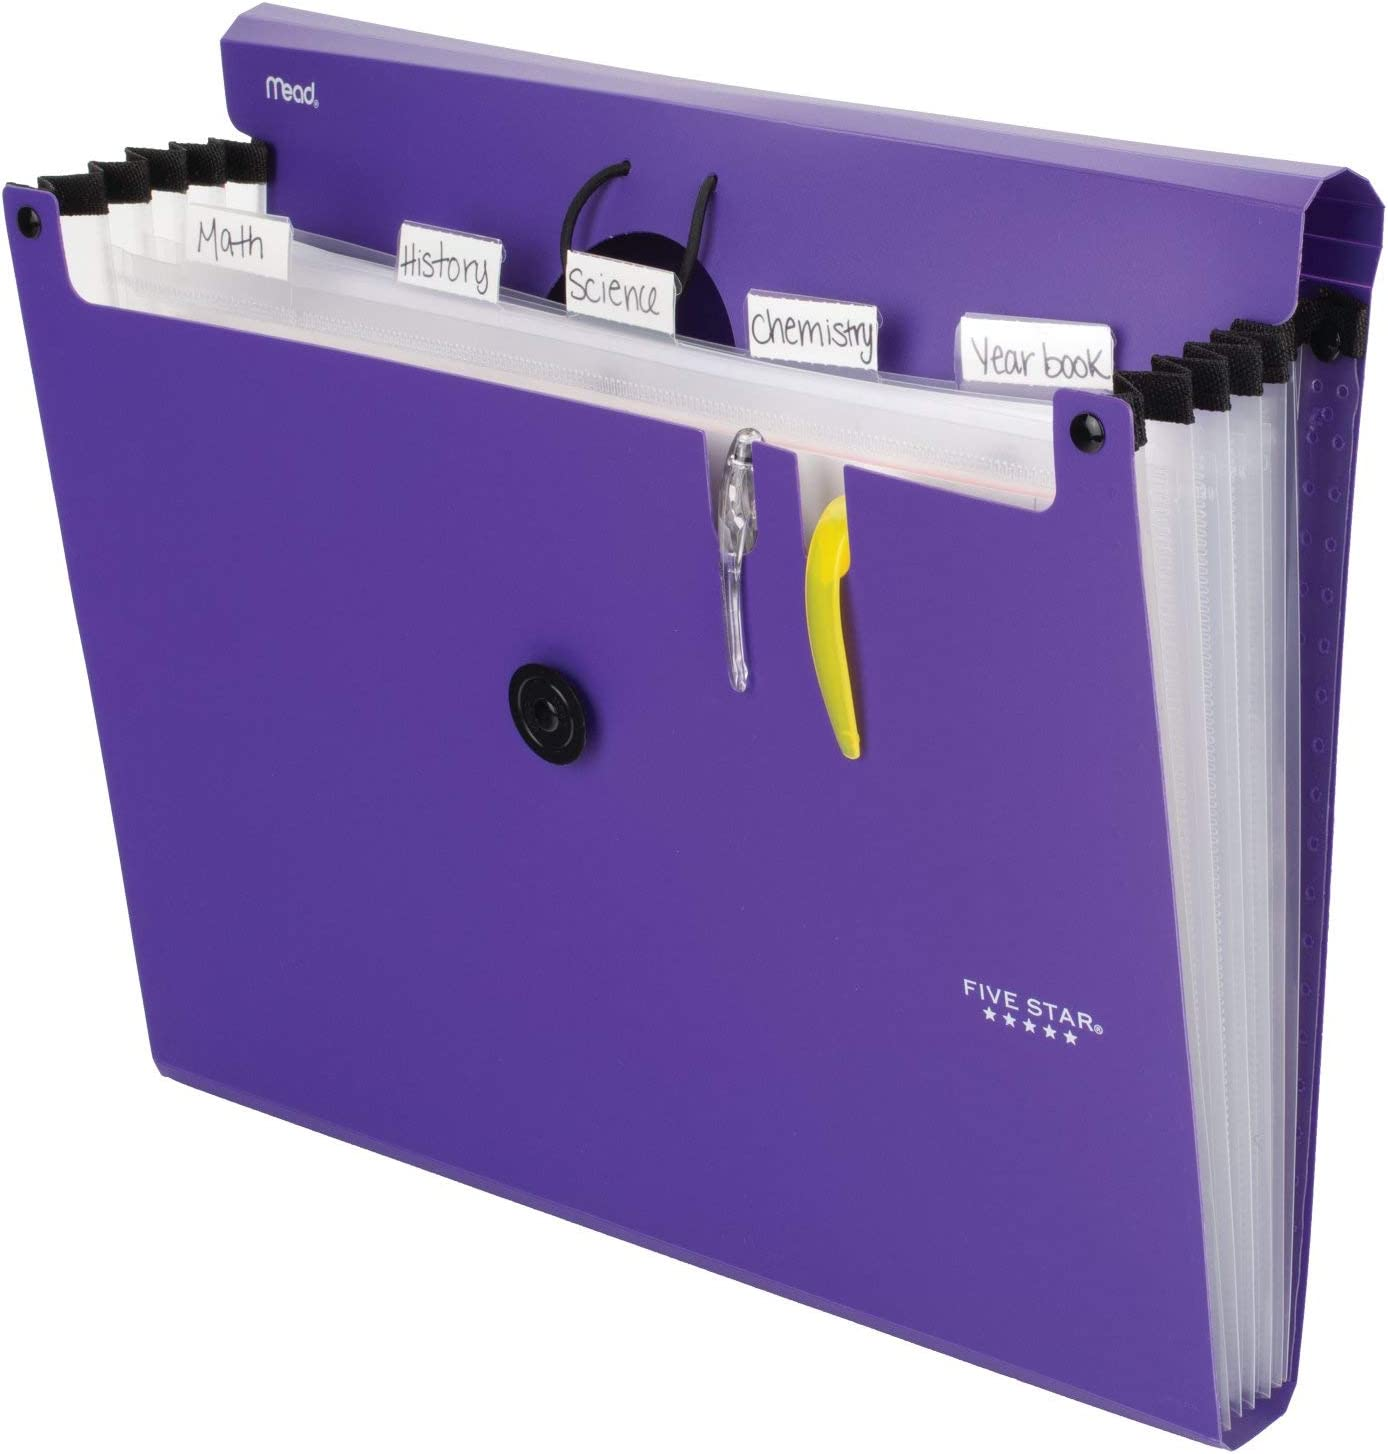 Five Star 6-Pocket Expanding File Organizer, Plastic Expandable Letter Size File Folders with Pockets, Home Office Supplies, Portable Paper Organizer for Receipts, Bills, Documents, Purple (72510) : Office Products